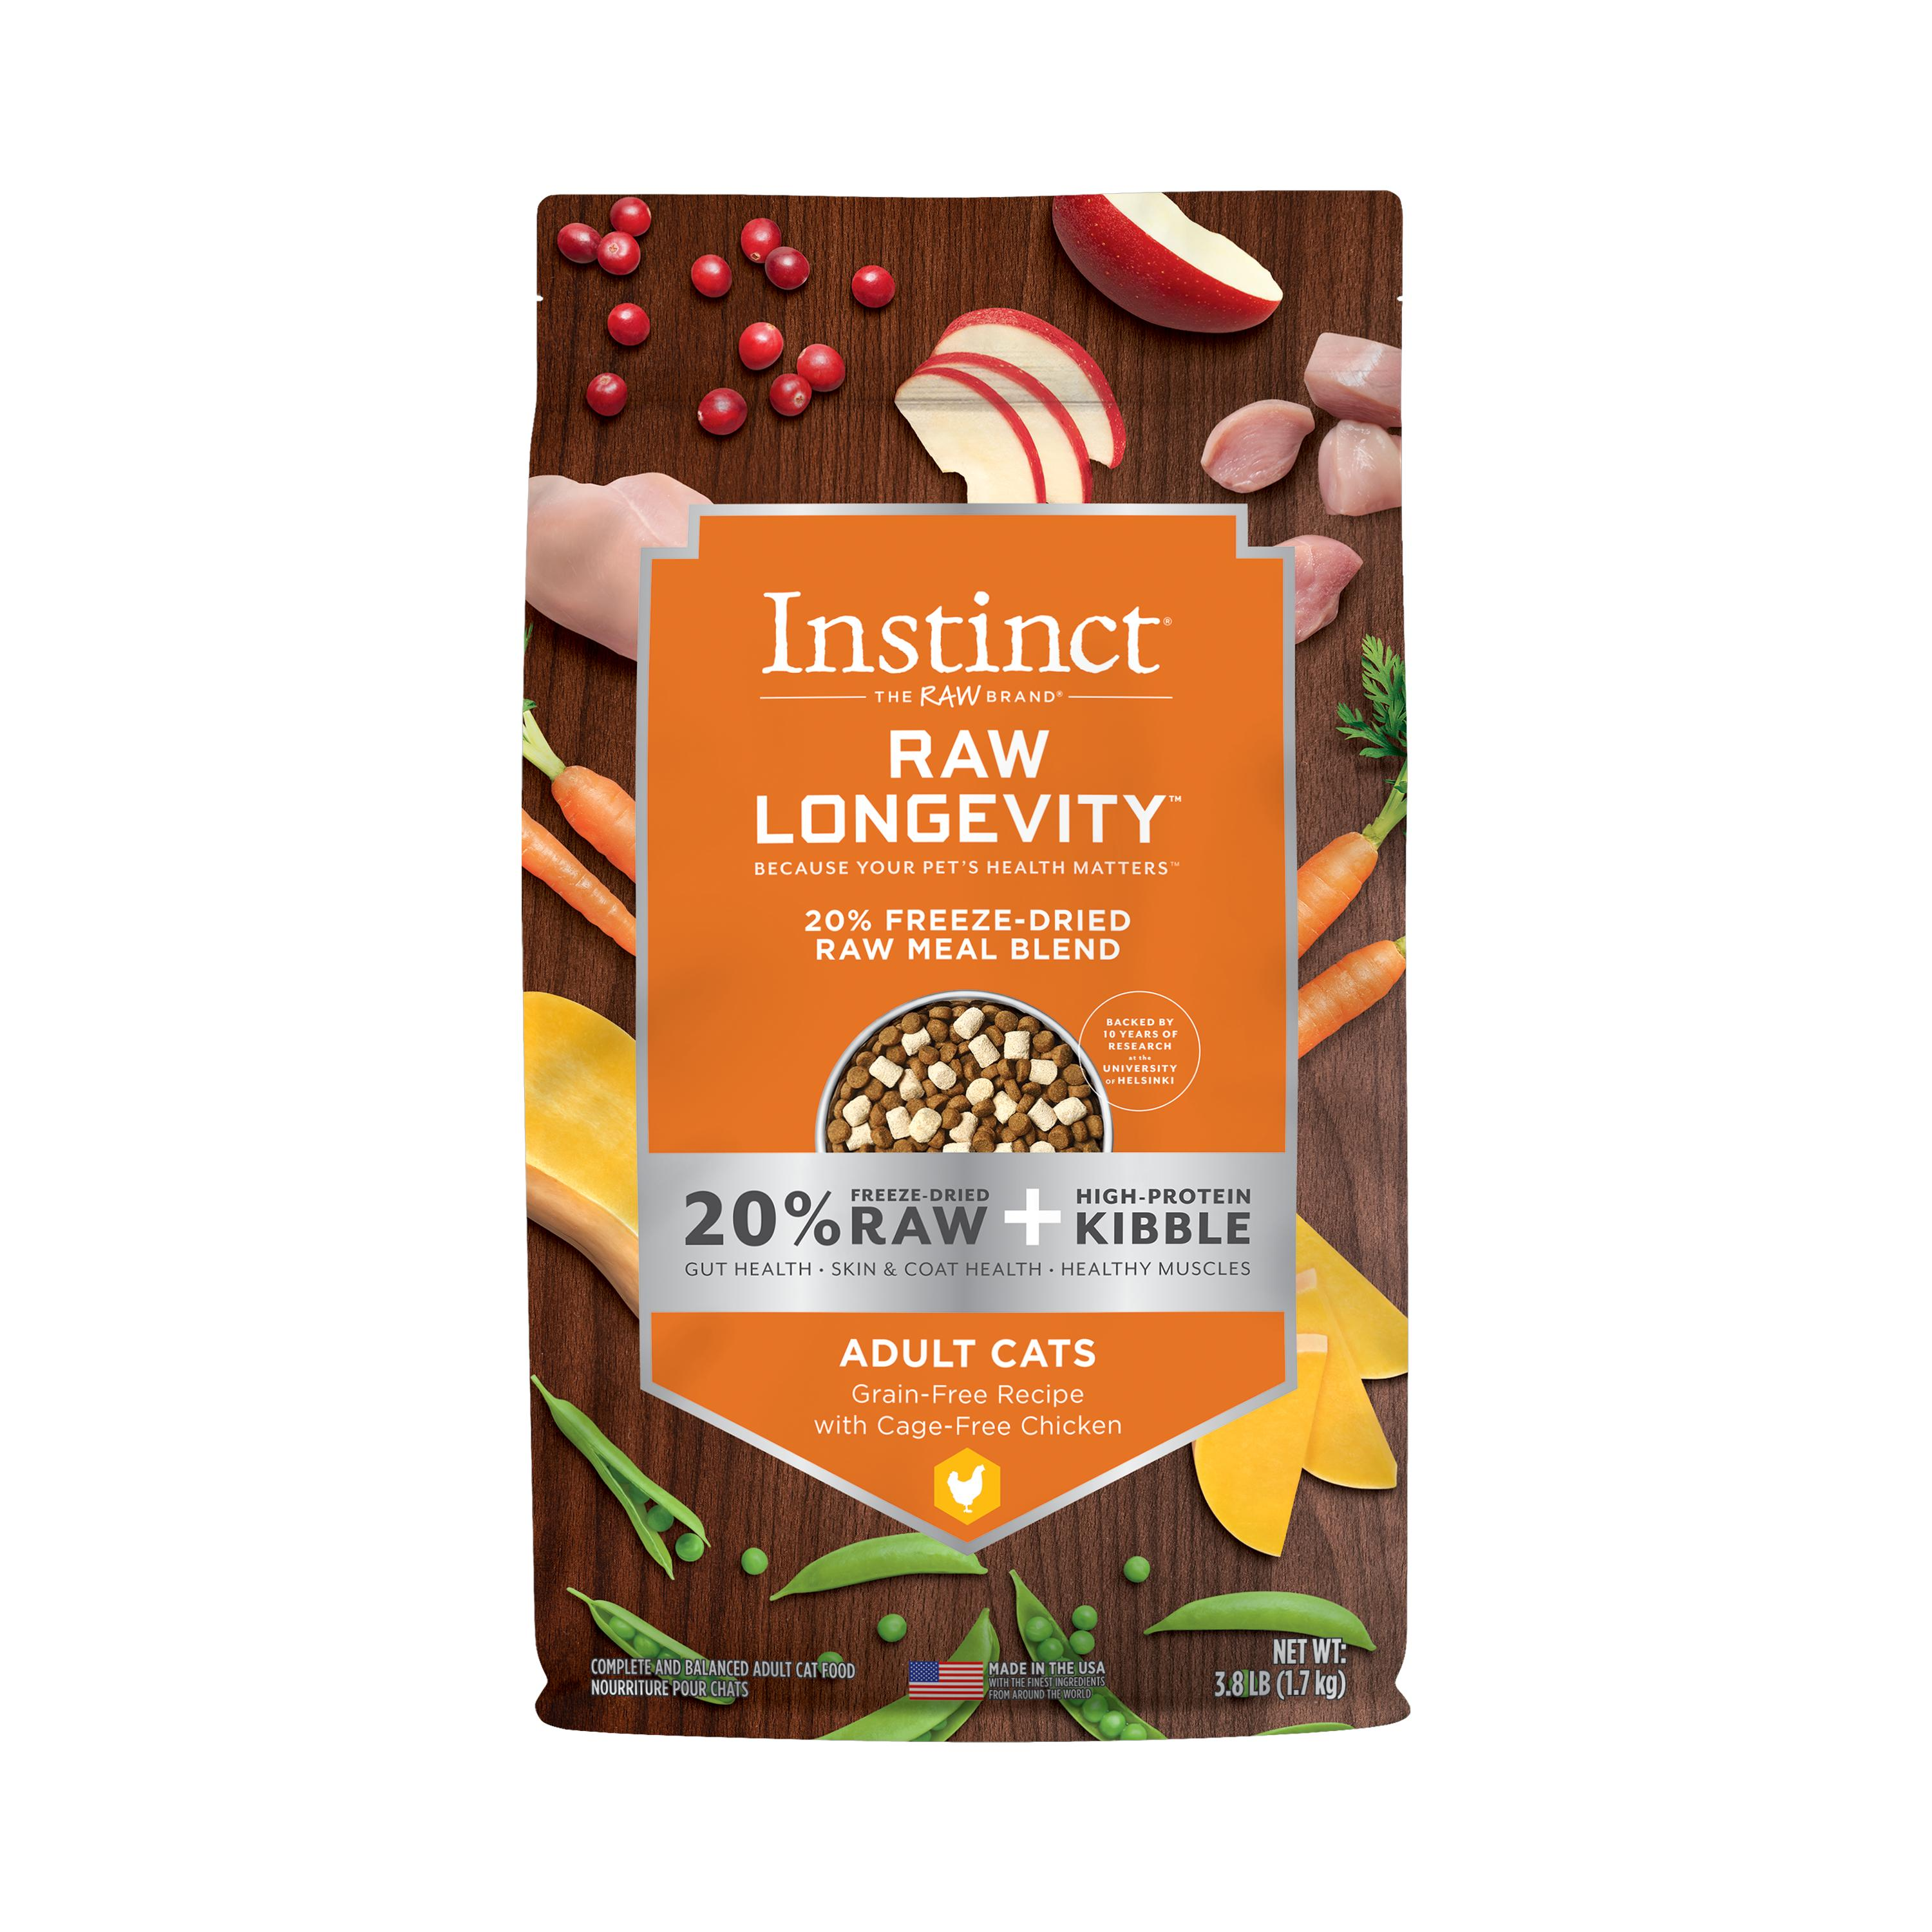 Instinct by Nature's Variety Raw Longevity Grain-Free Recipe with Cage-Free Chicken 20% Freeze-Dried Cat Food Image